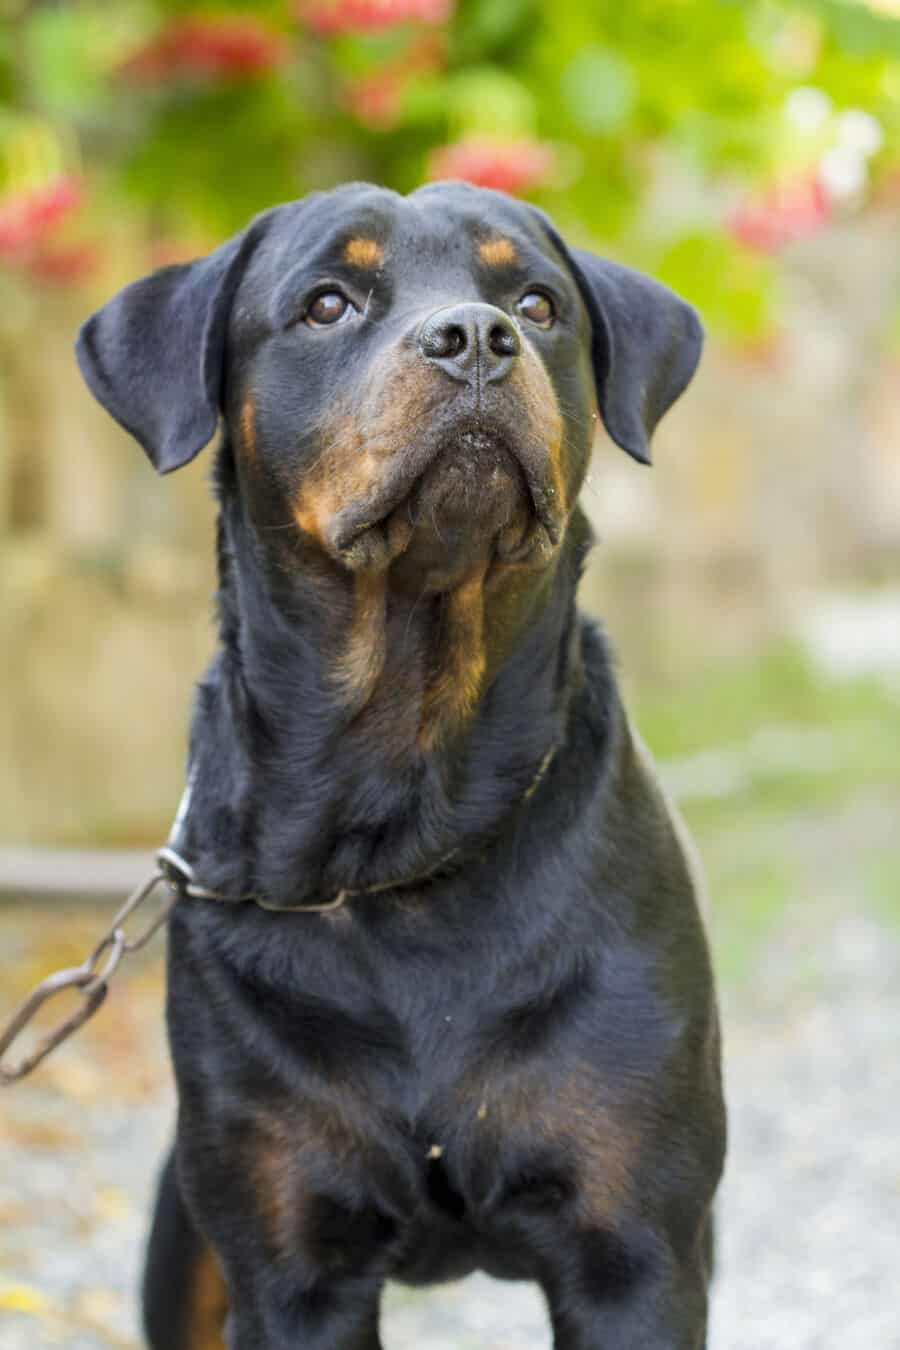 Can Rottweilers Live Outside?